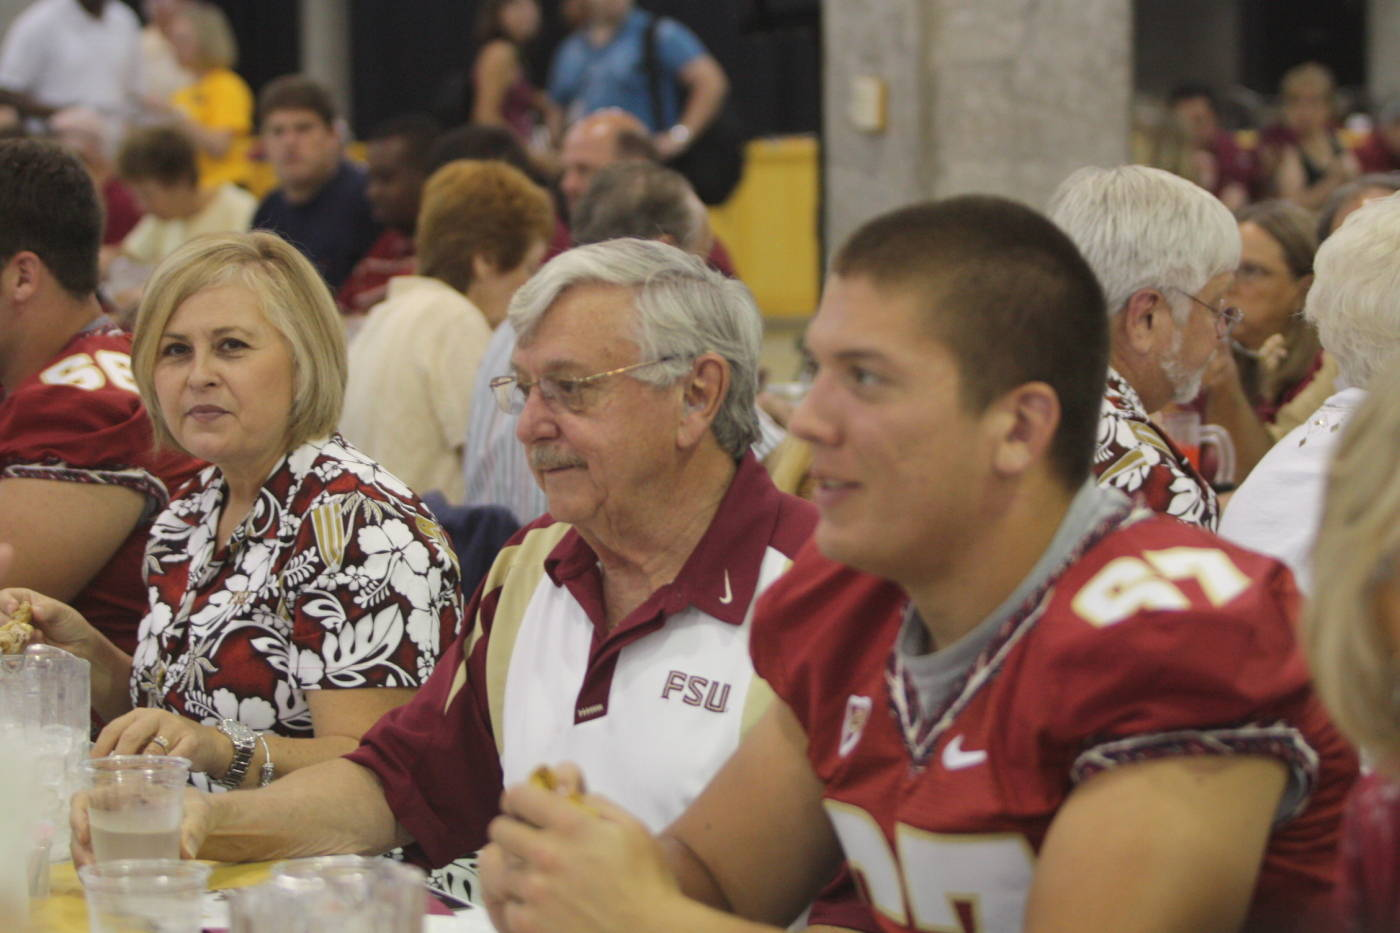 Andrew Datko at the 2009 Football Luncheon.